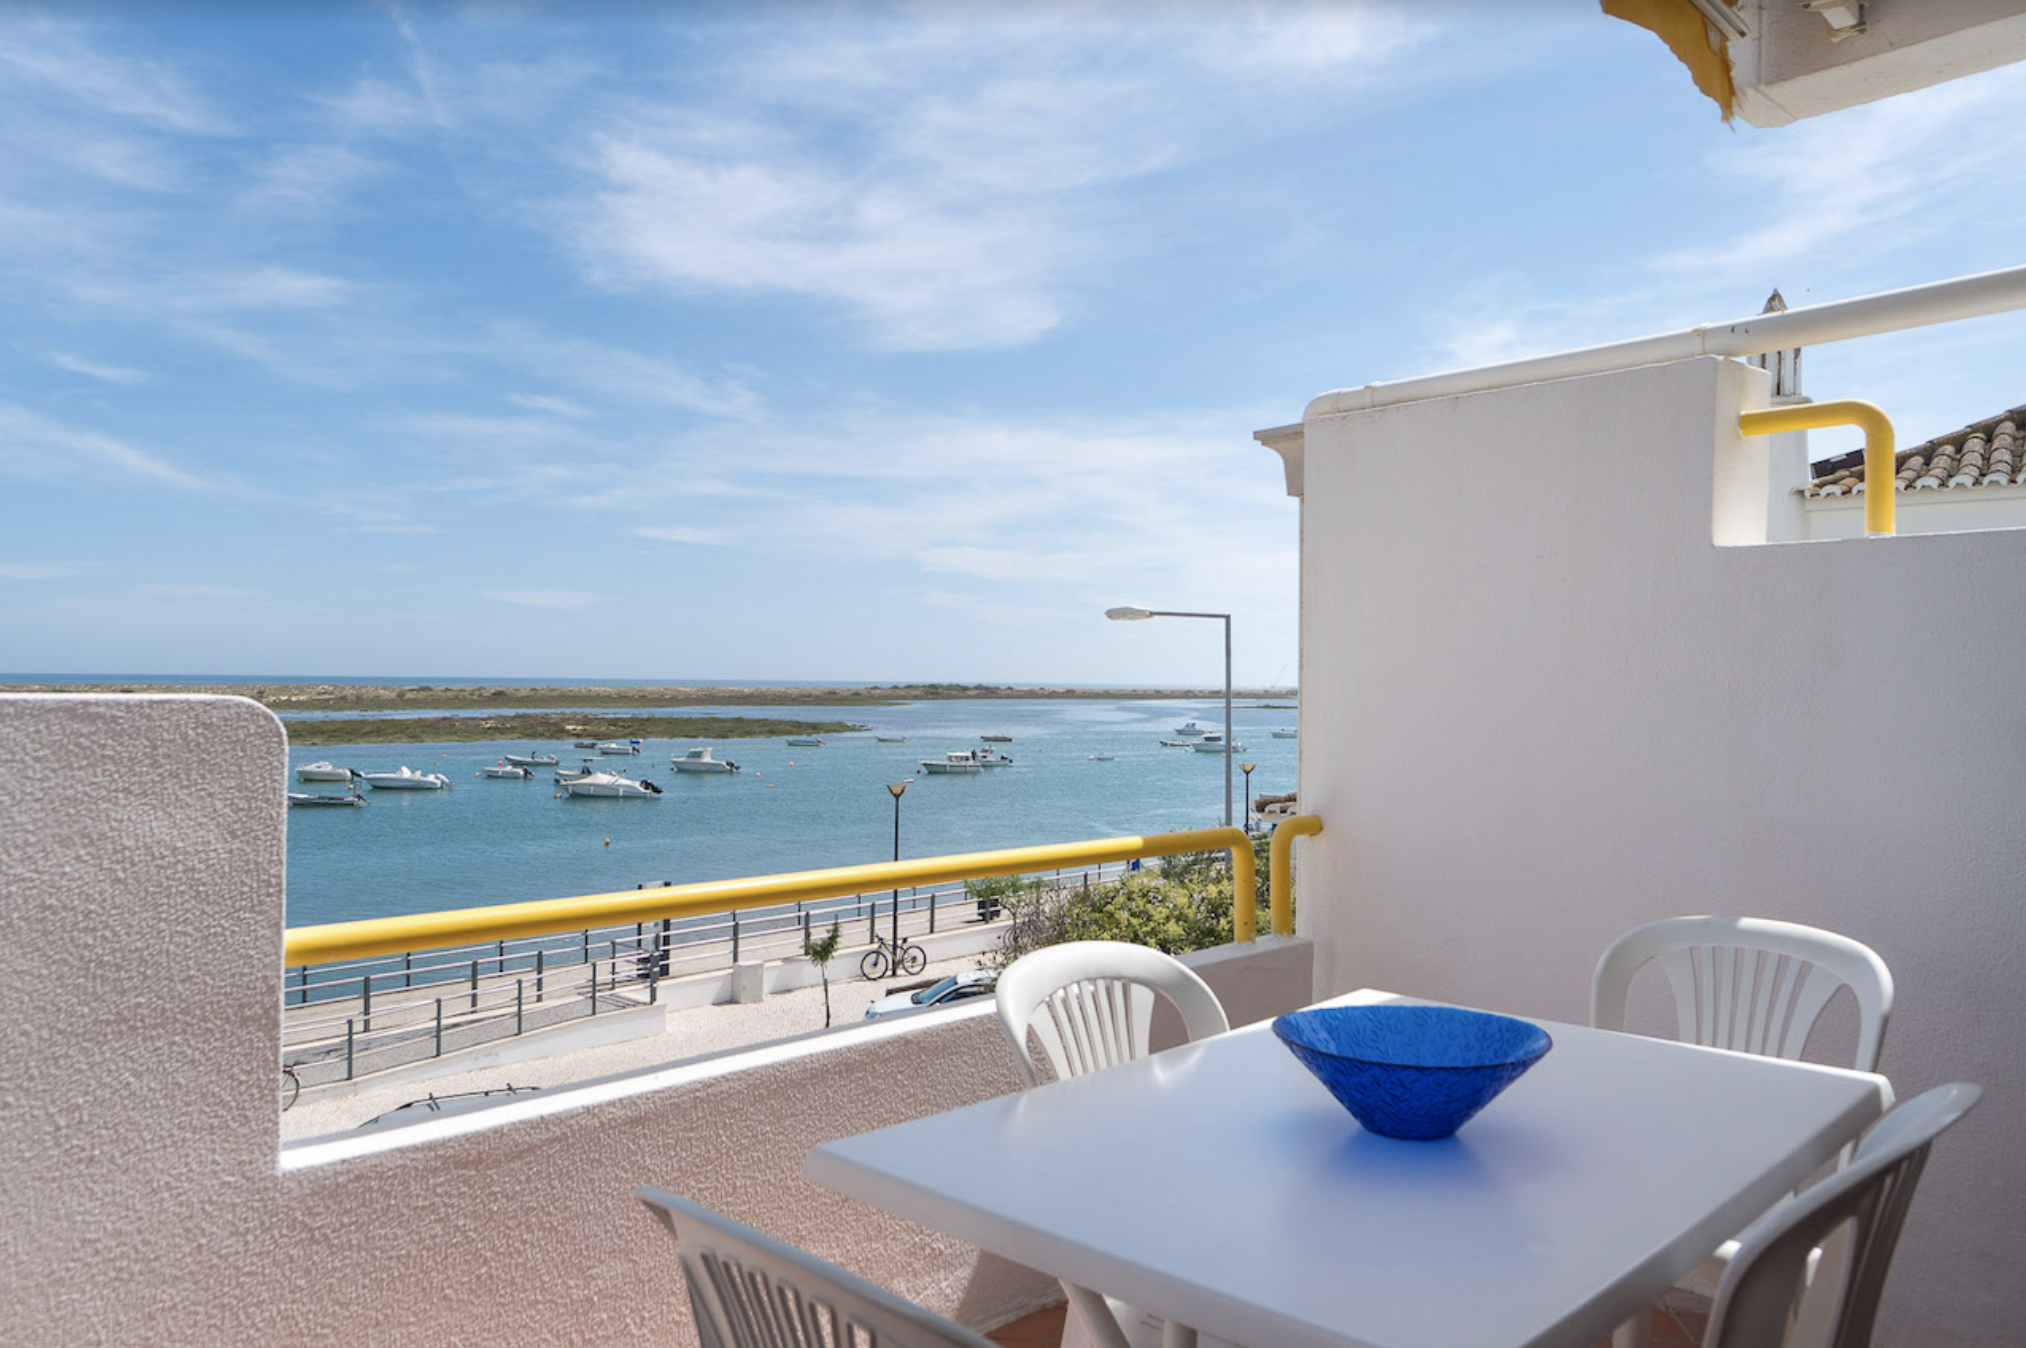 9 Fantastic Vacation Rentals In The Algarve With Sea View. Algarve Holiday. // Warmrental